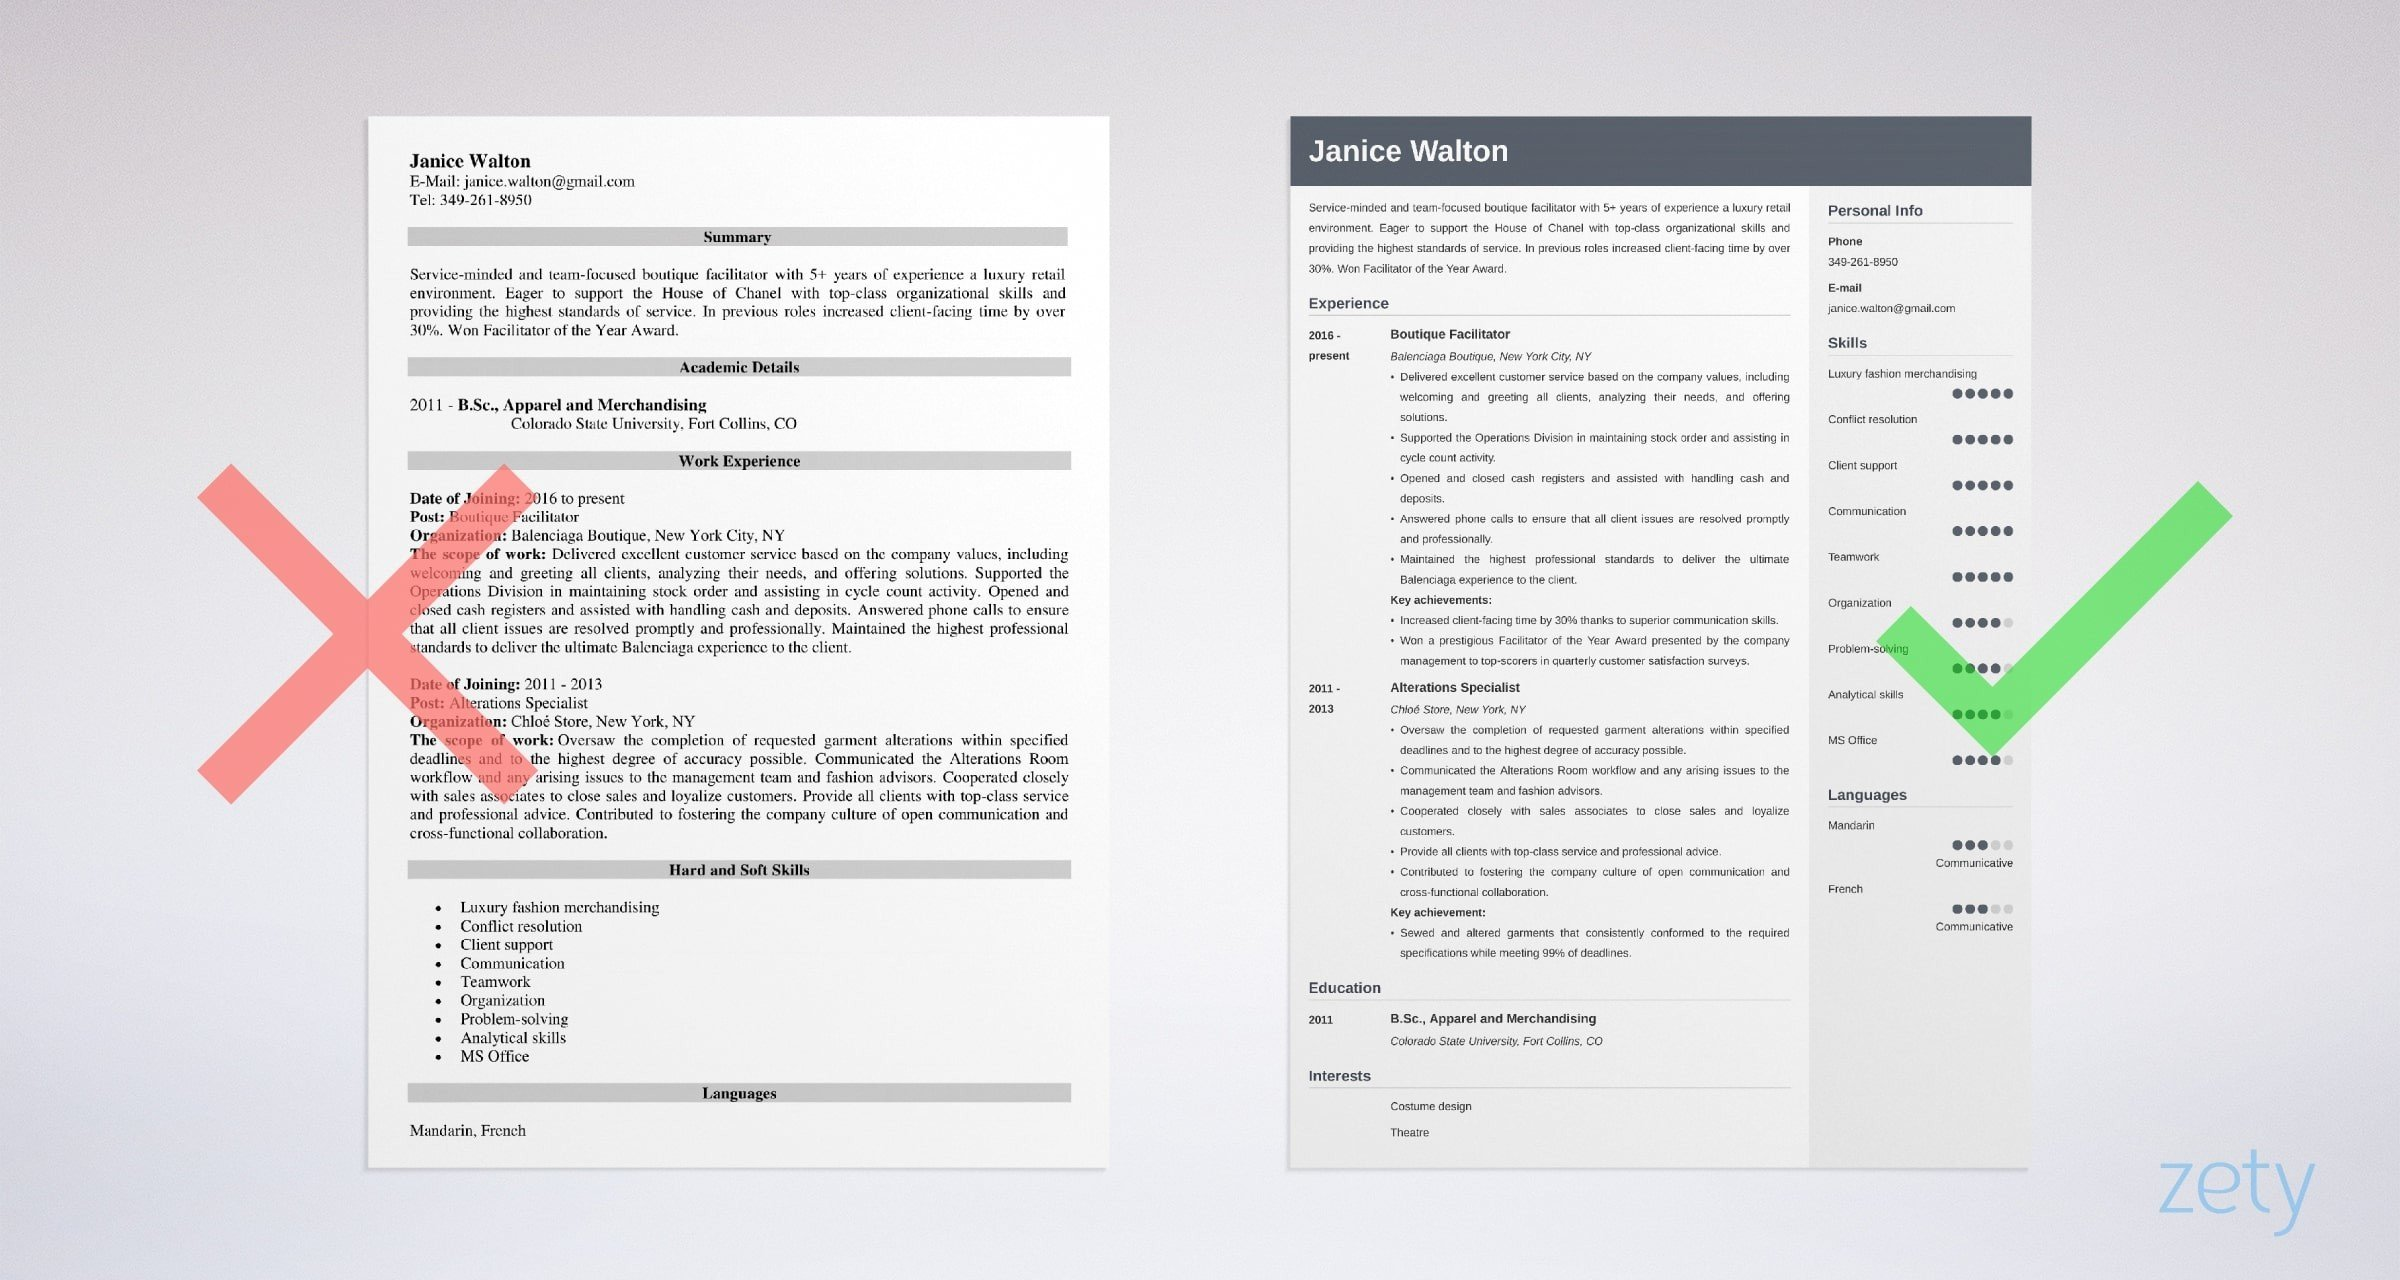 fashion resume examples templates guide with tips merchandising objective example Resume Fashion Merchandising Resume Objective